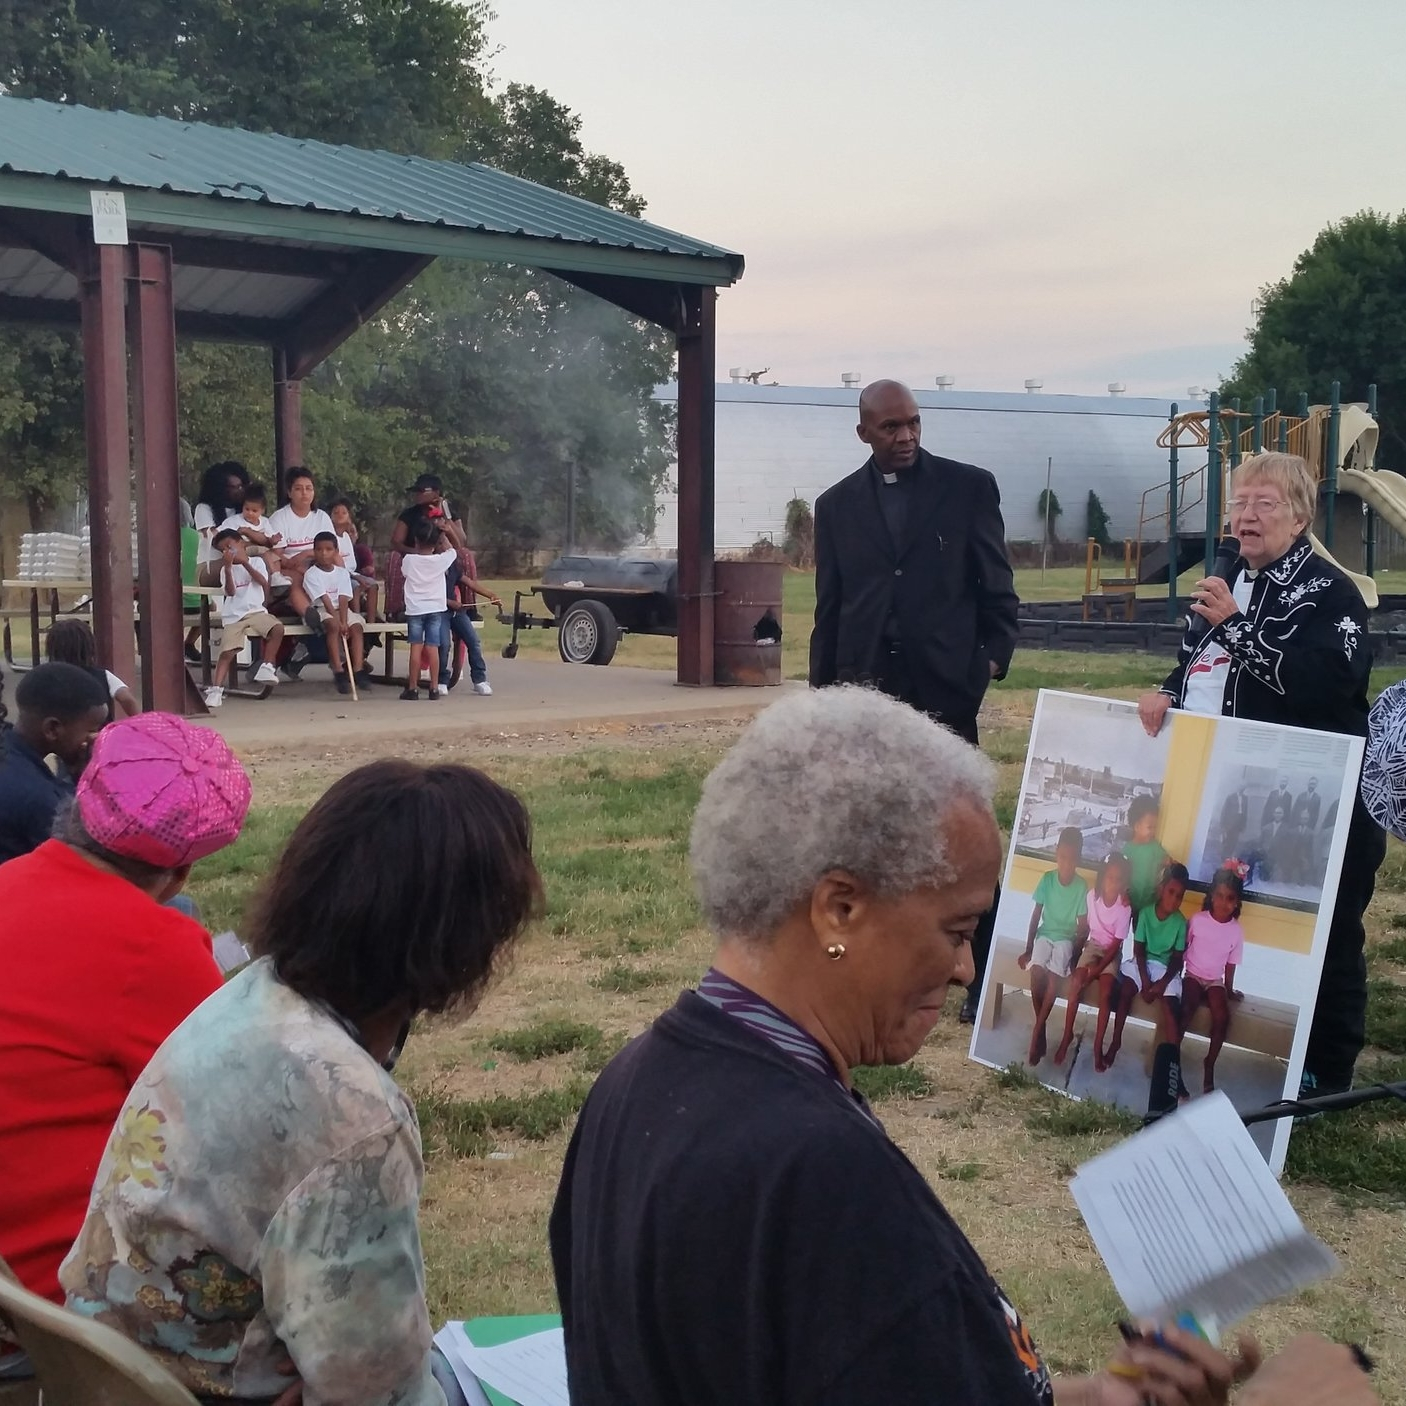 Part 7: Remember2019, Memory and Reflection on Mass Lynching in Phillips County, AR